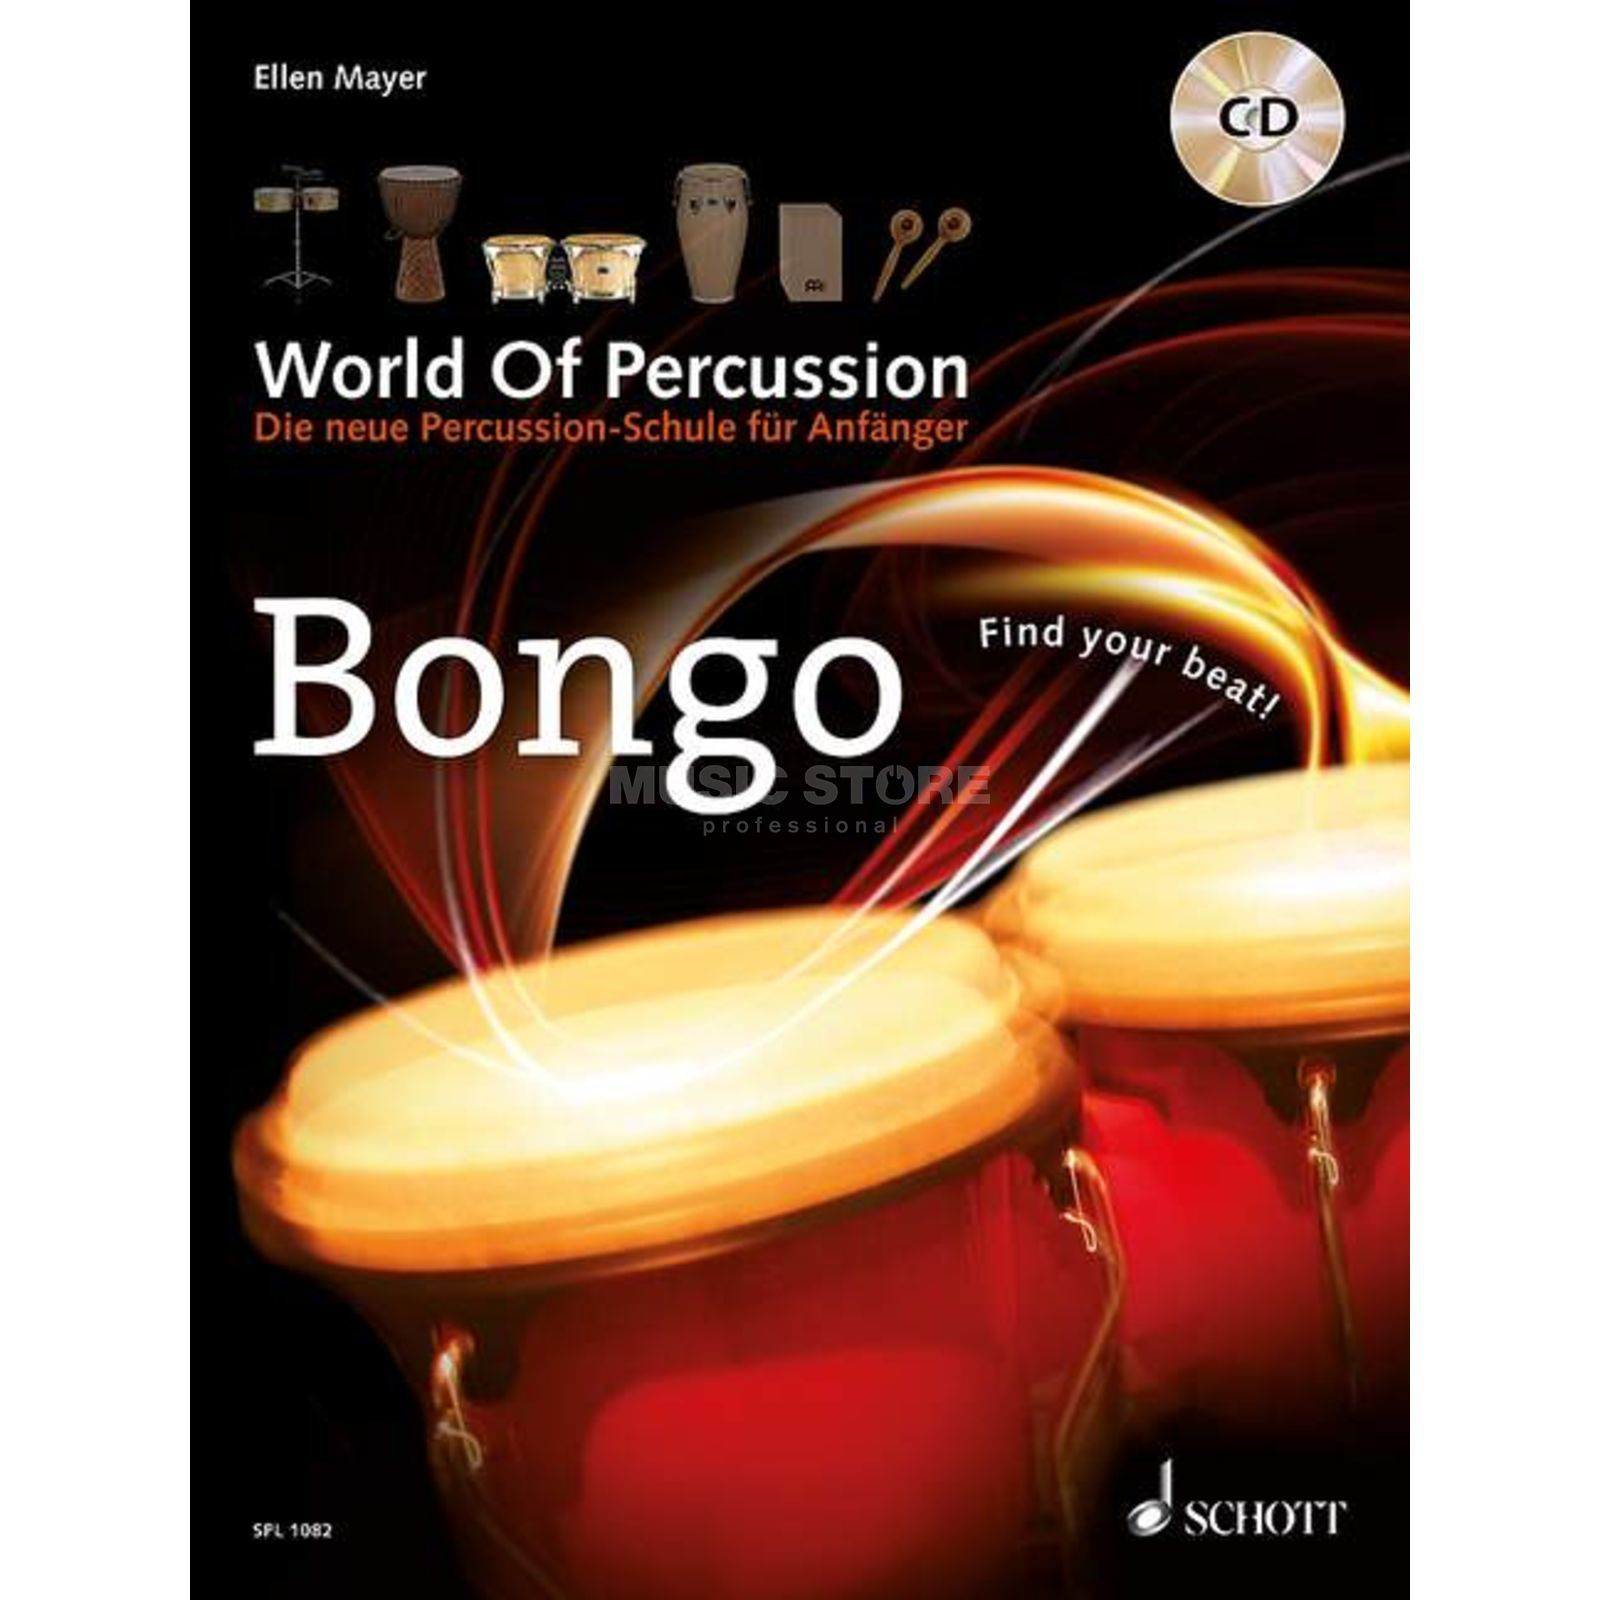 Schott Music Bongo 2, World of Percussion Ellen Mayer Produktbild